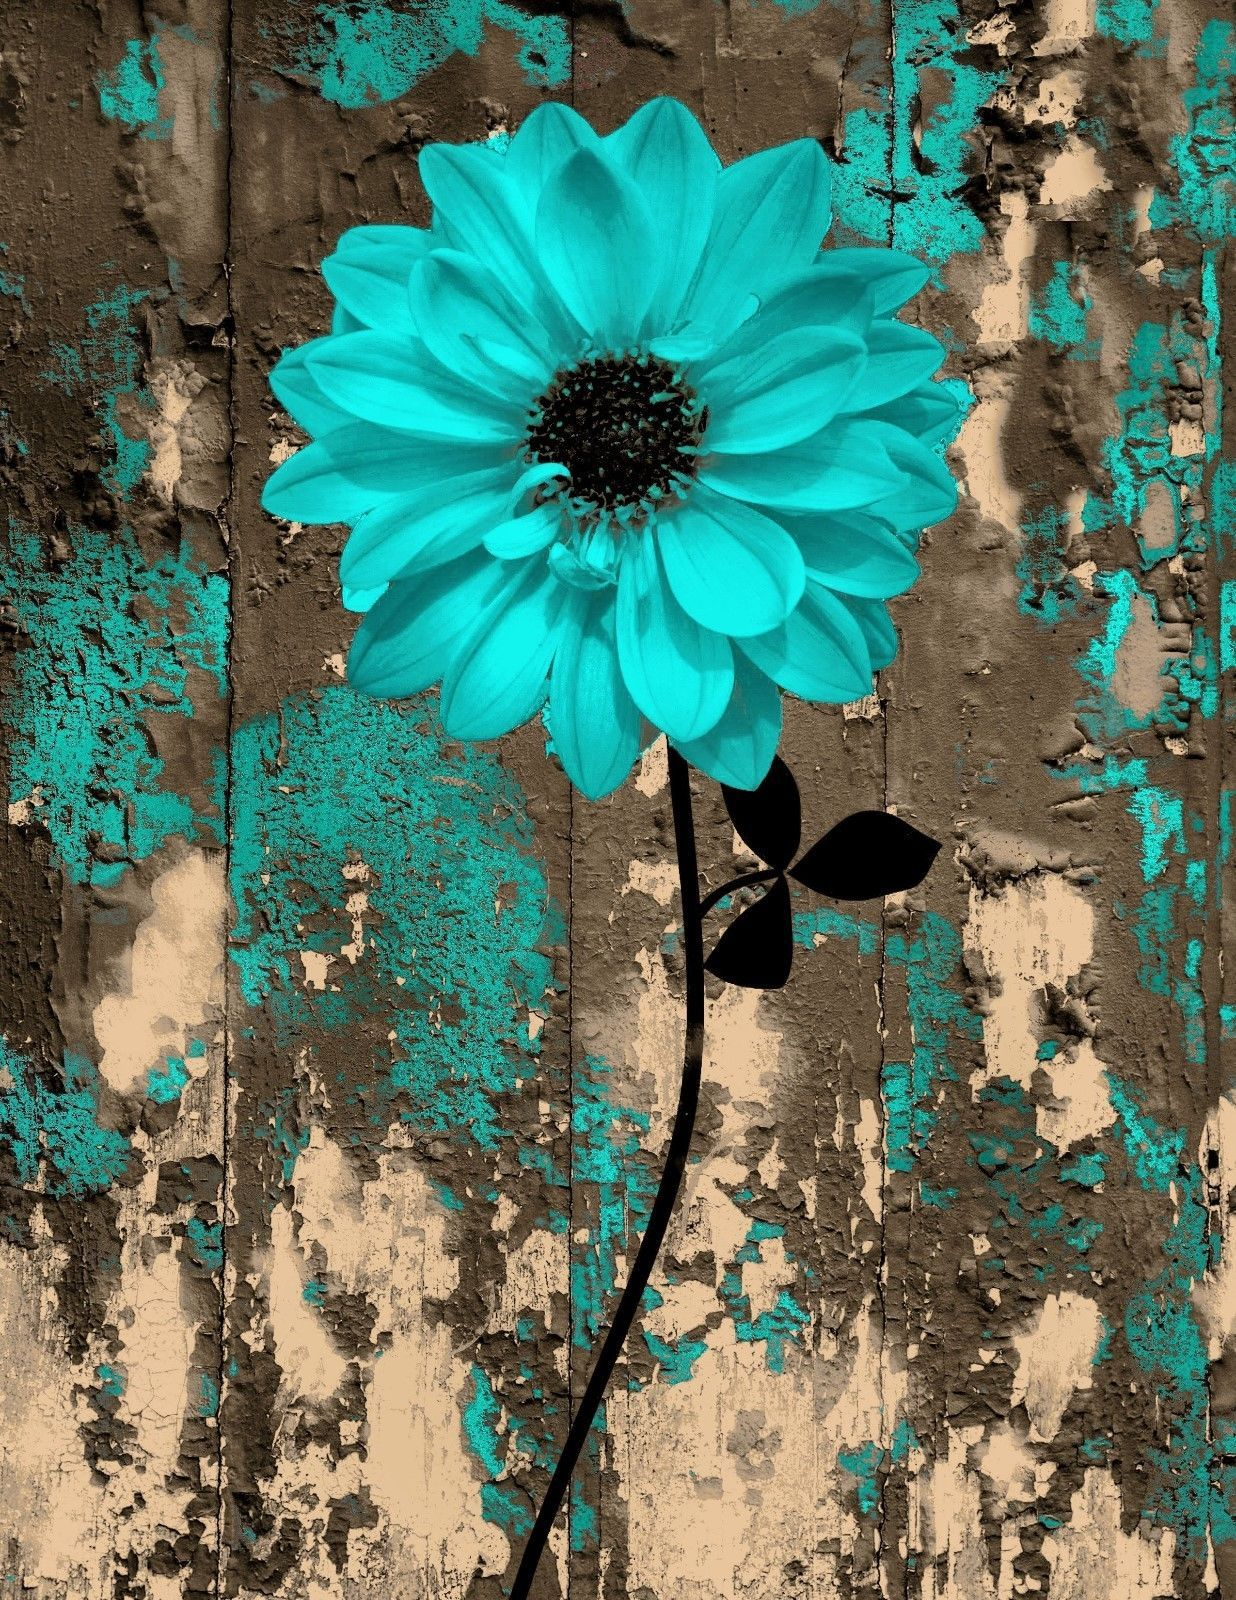 Rustic Teal Brown Floral Bedroom/Bathroom Wall Art Home Decor